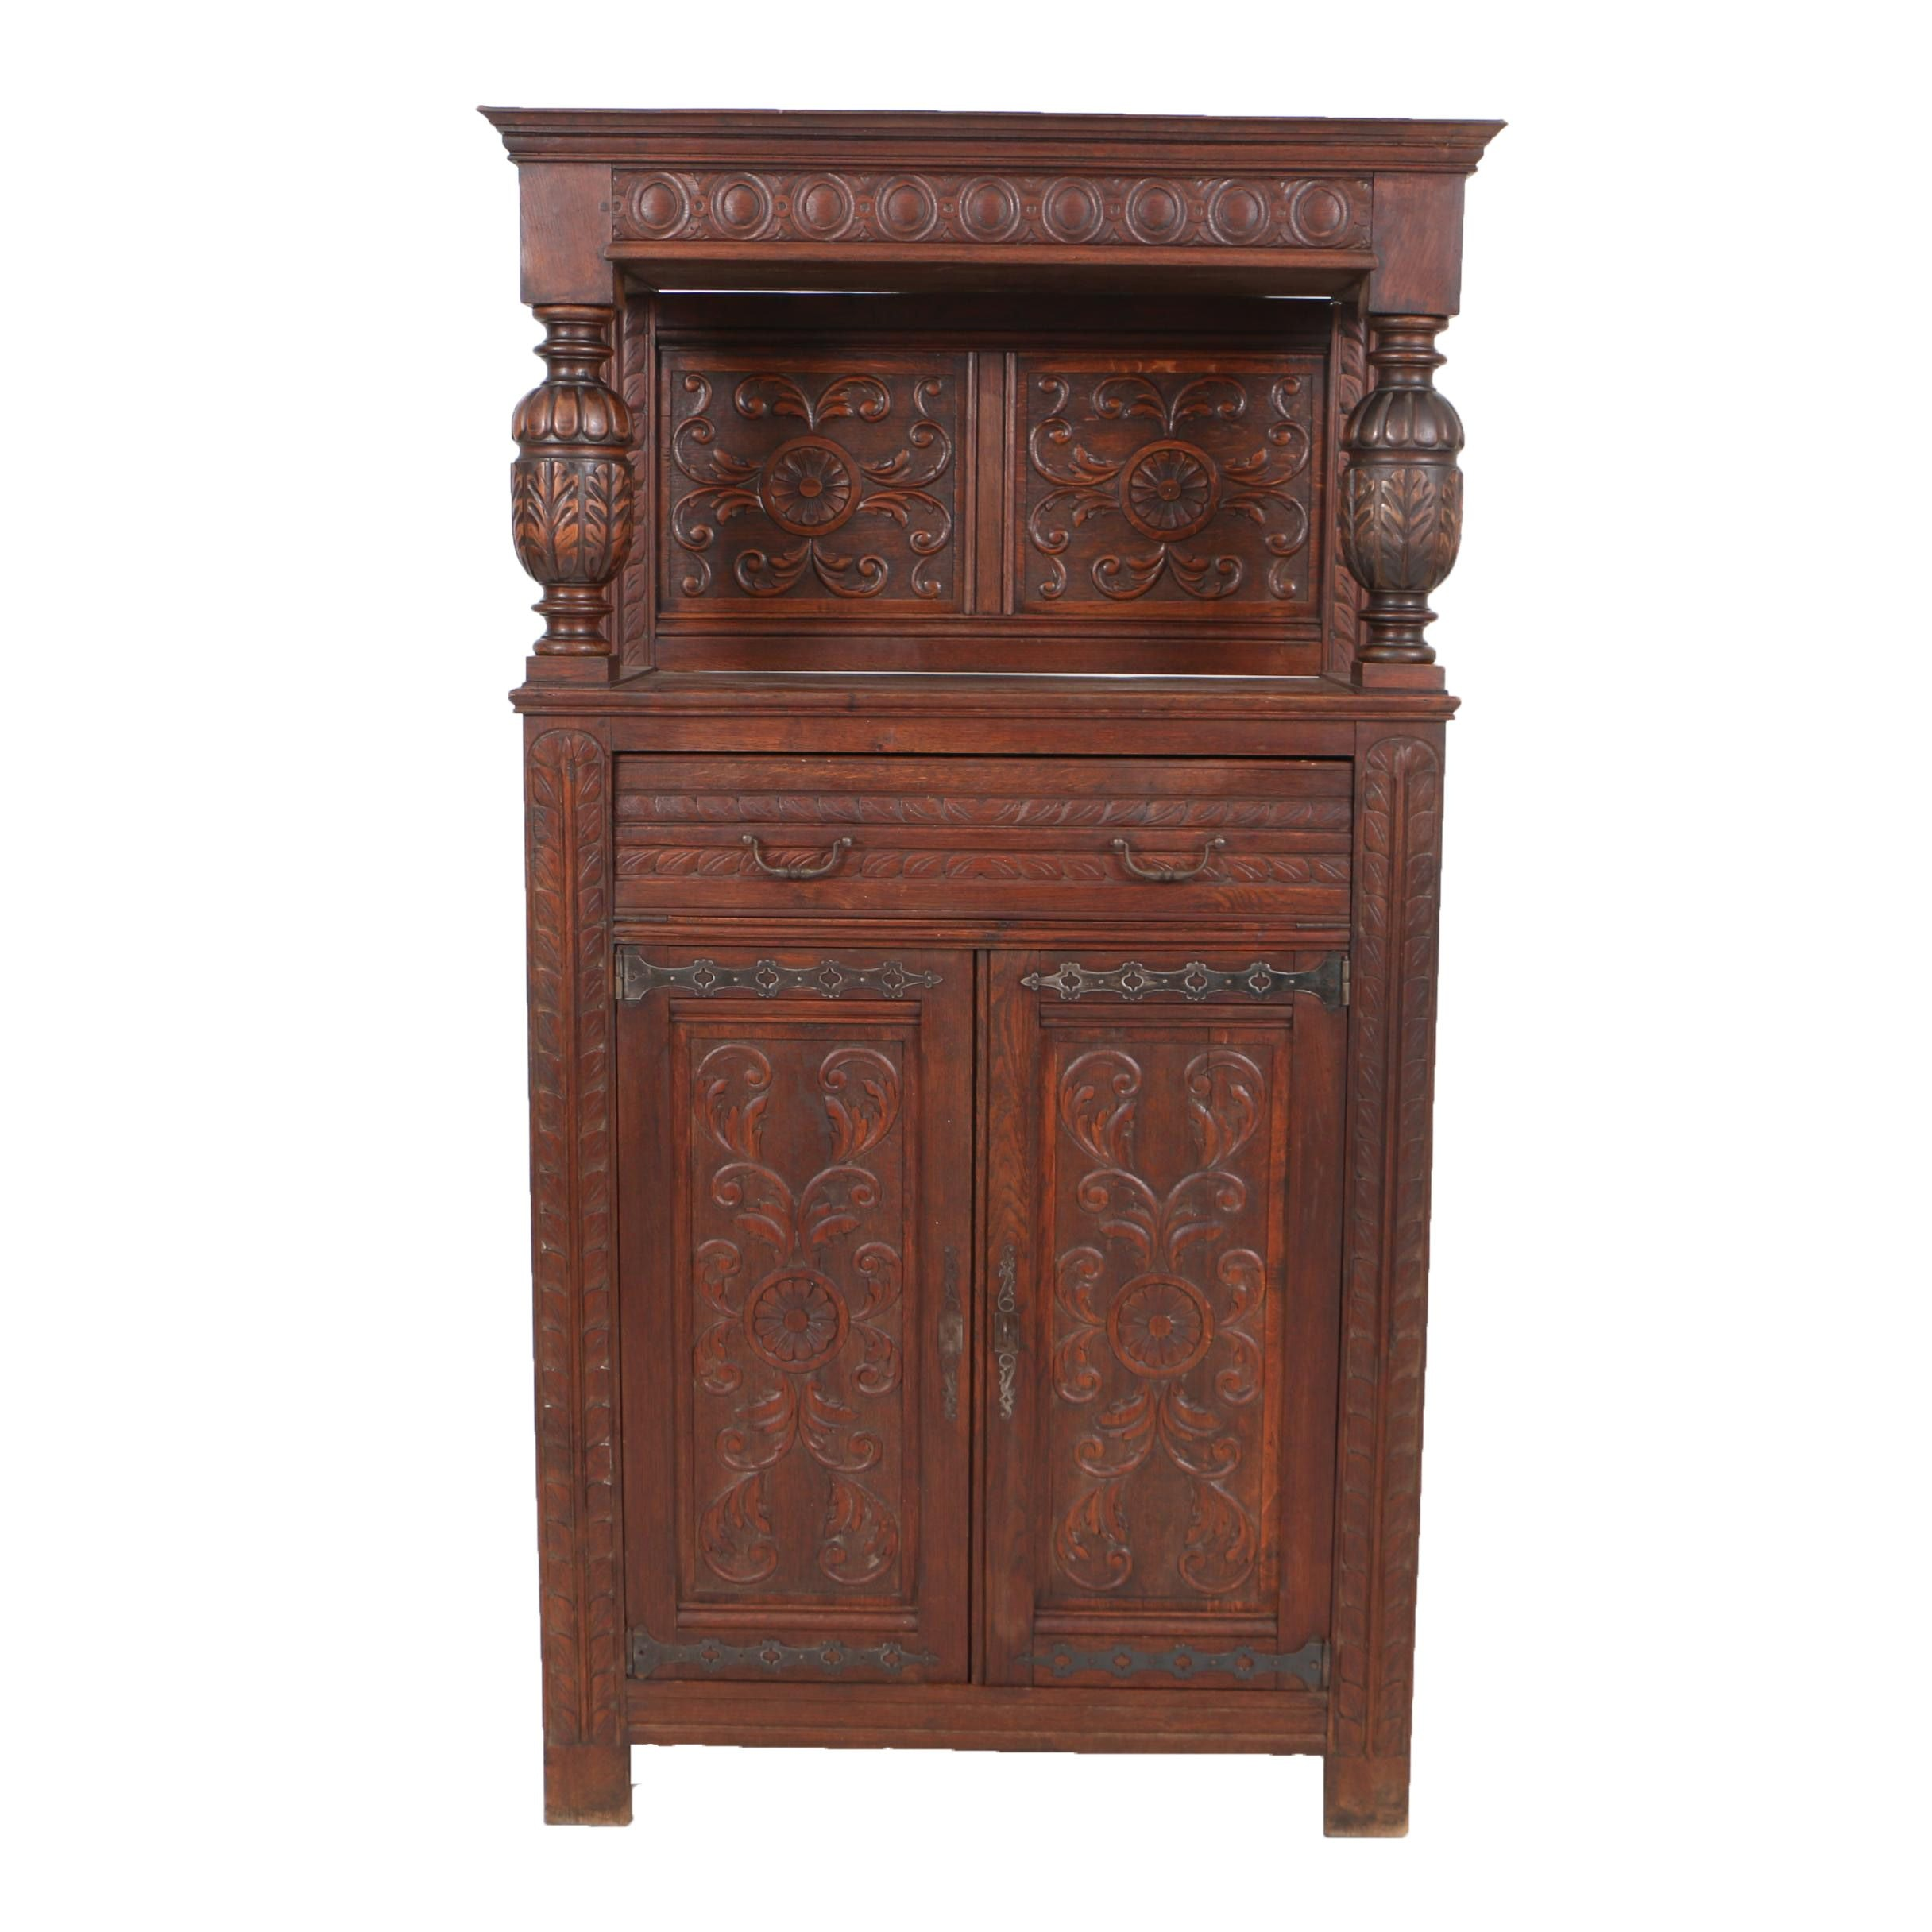 Early 20th Century Jacobean Style Carved Oak Fall-Front Bar Cabinet